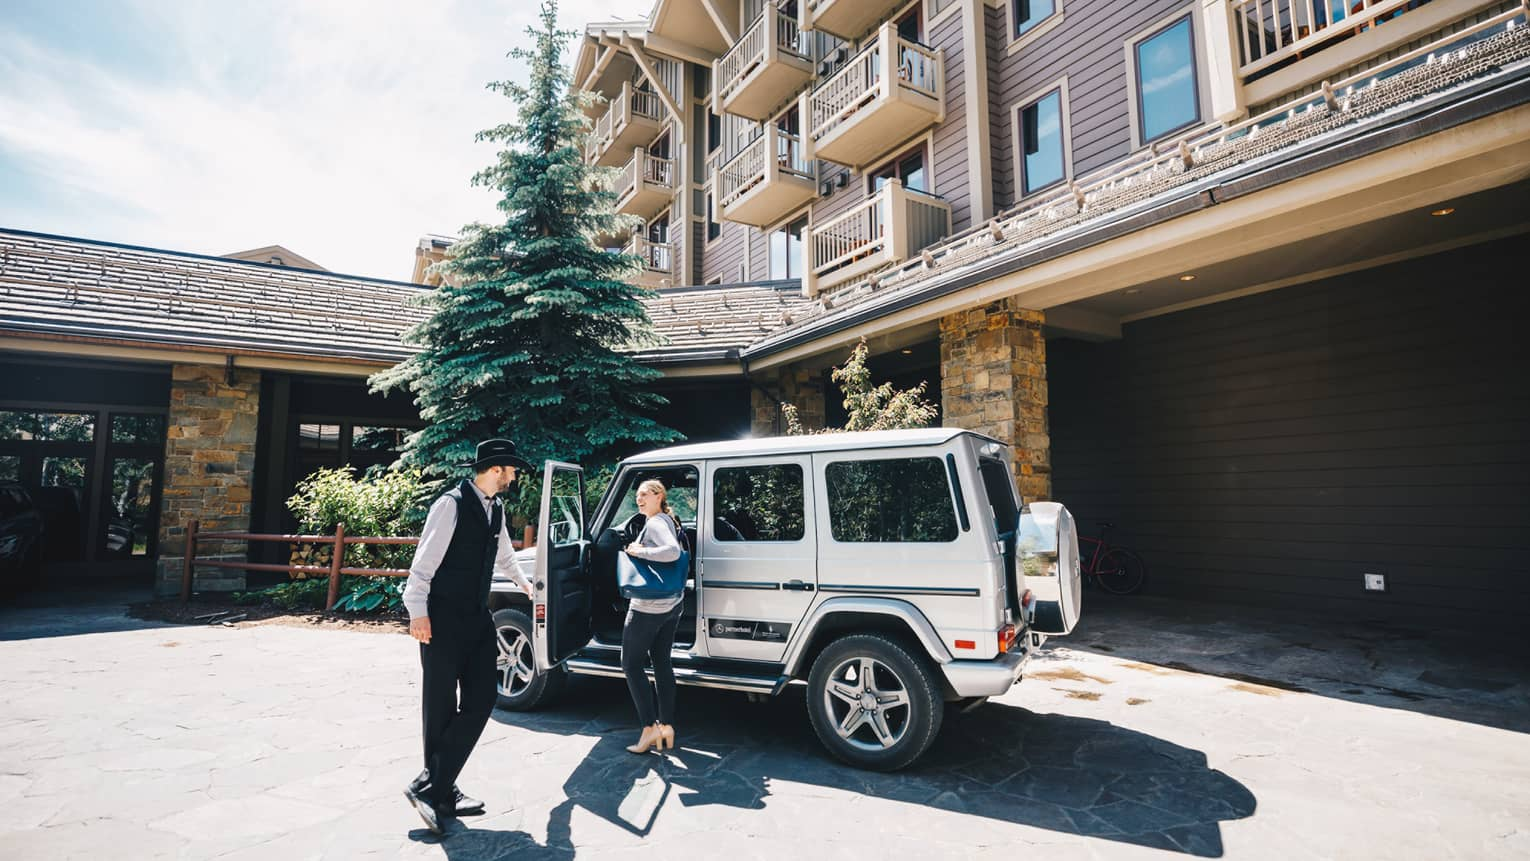 Resort staff opens the driver-side door of a luxury utility vehicle parked in the driveway for guest